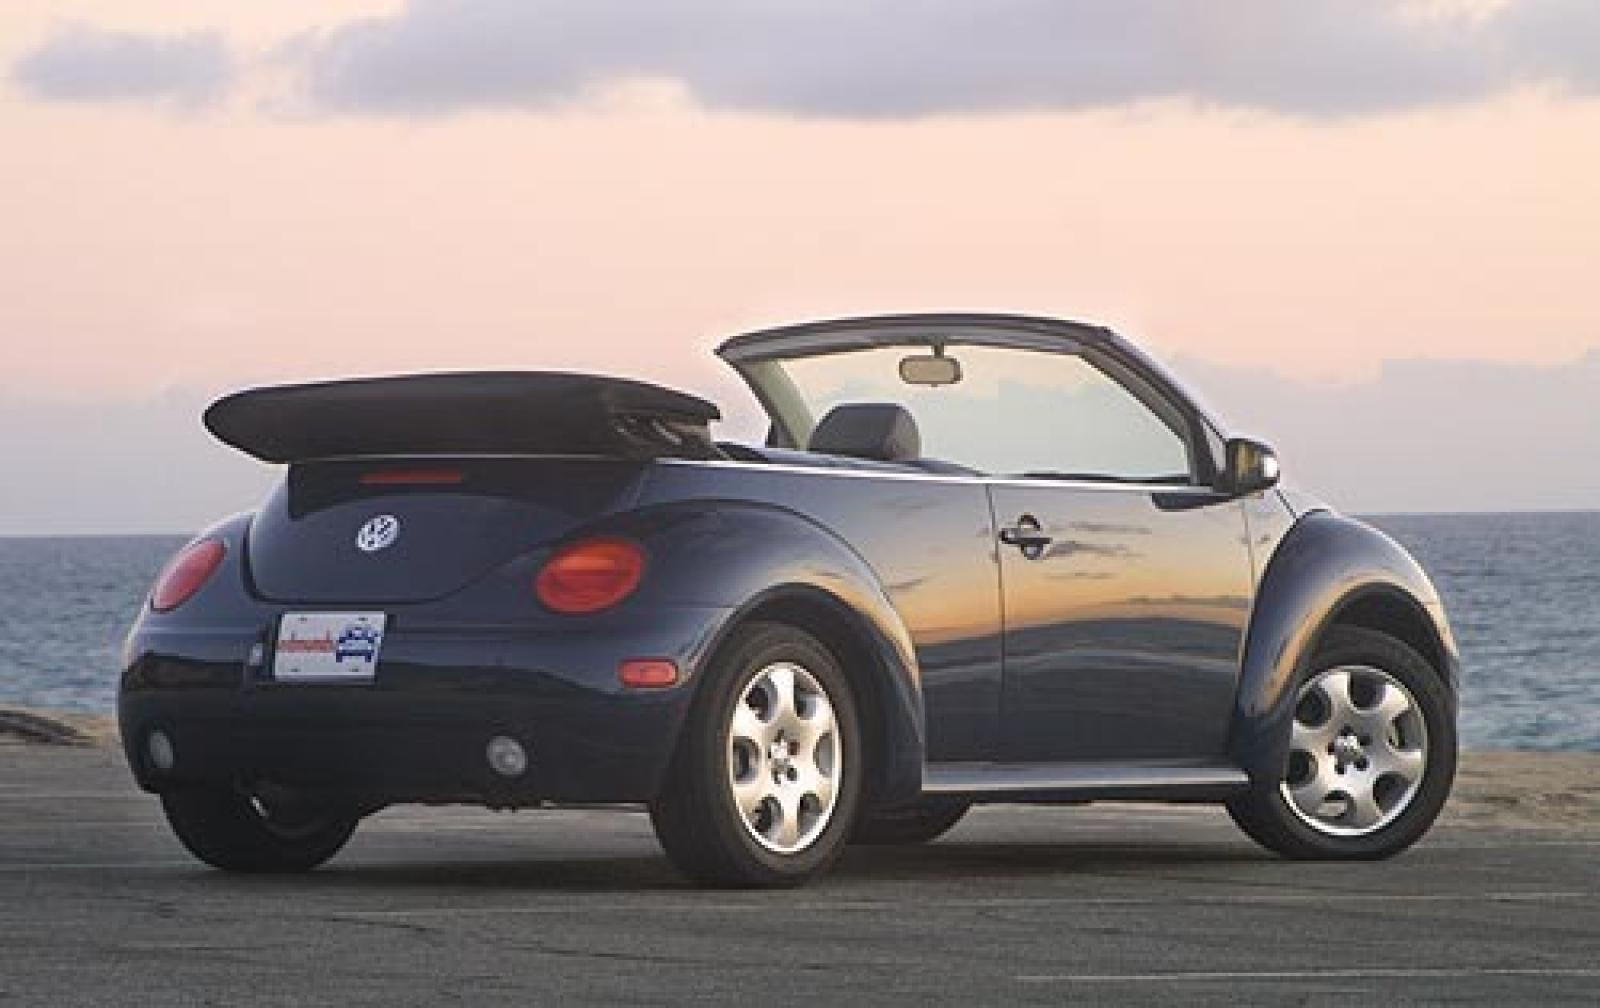 2005 volkswagen new beetle information and photos zombiedrive. Black Bedroom Furniture Sets. Home Design Ideas